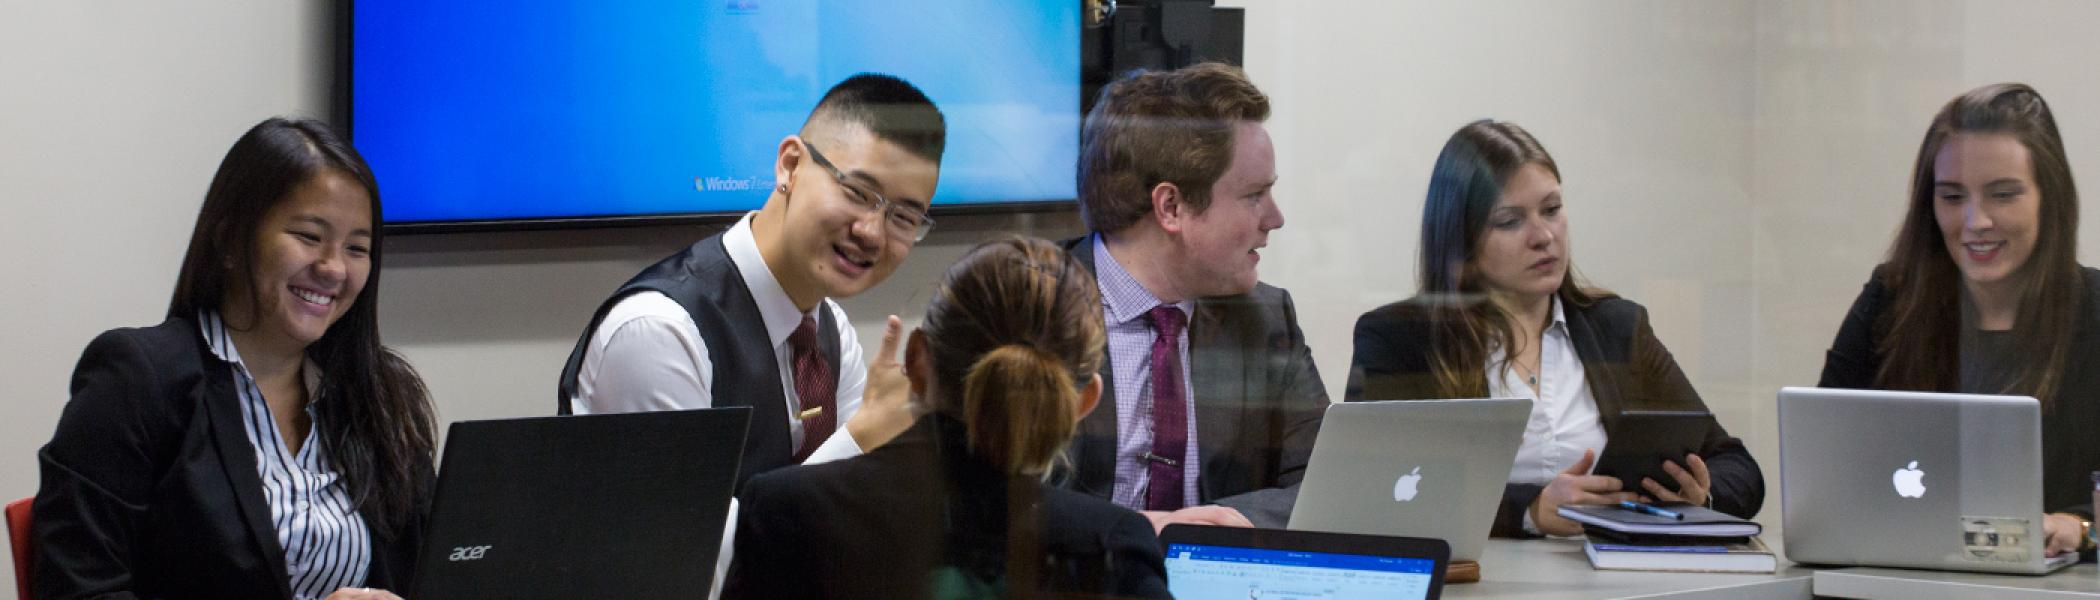 A group of students in business suits sitting at a round table in front of their laptops looking at their screens, except for one who is smiling at the camera